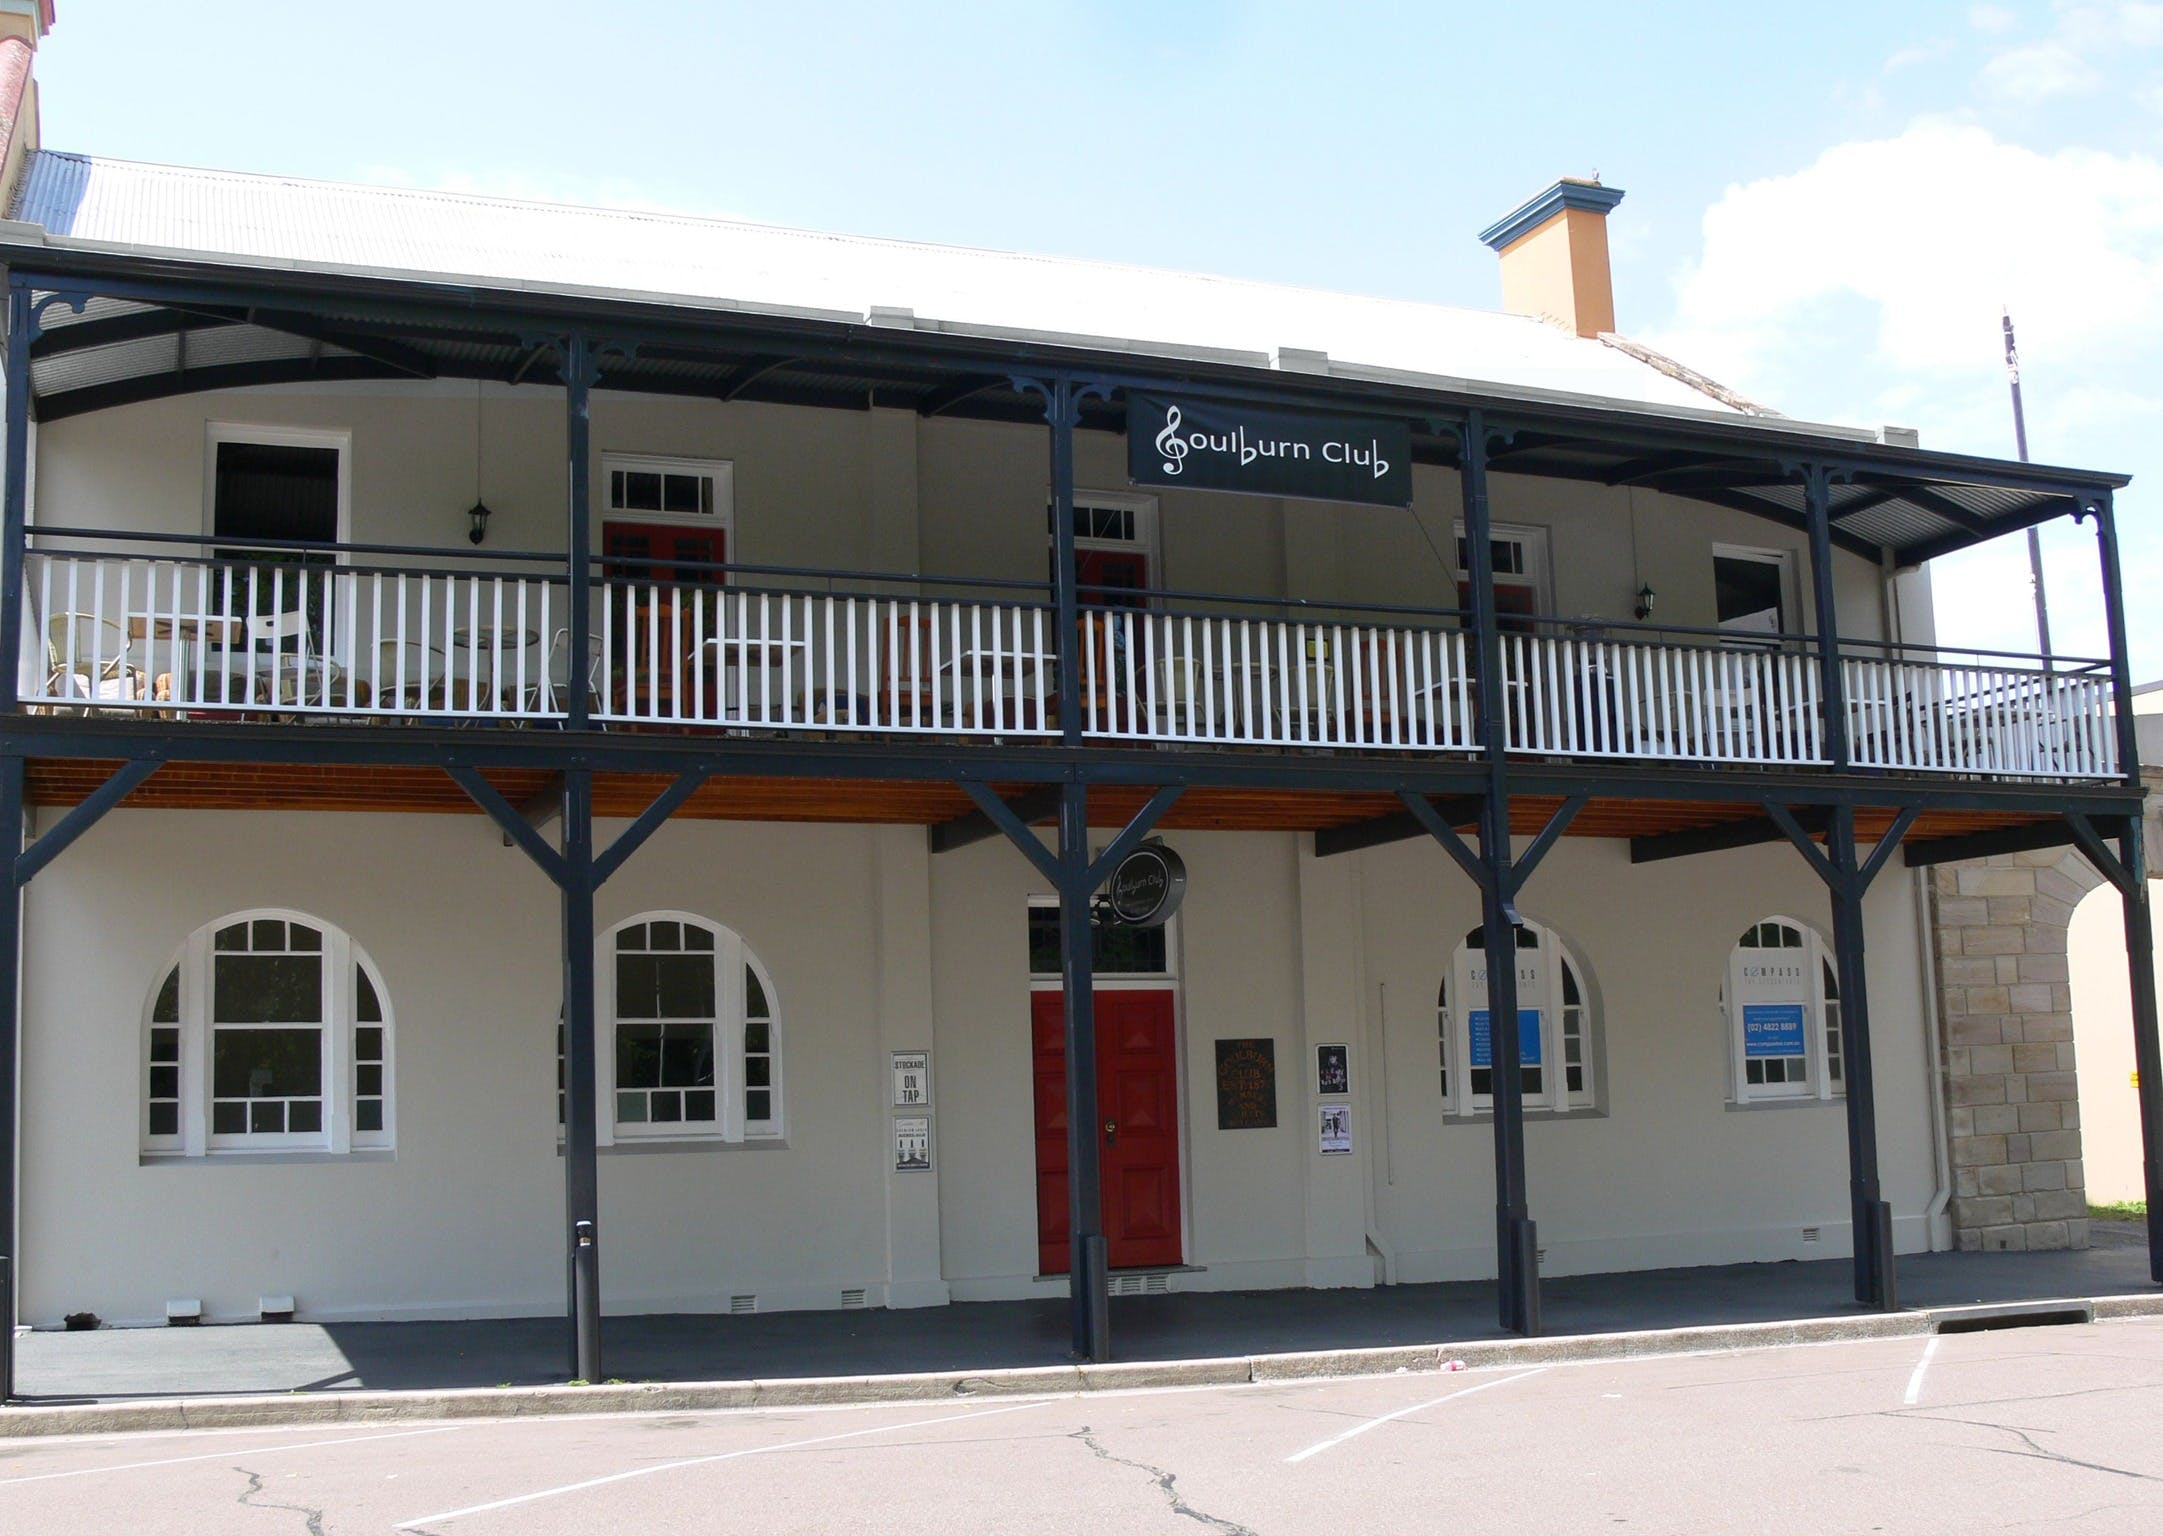 Open Mic Night at the Goulburn Club - Accommodation Melbourne